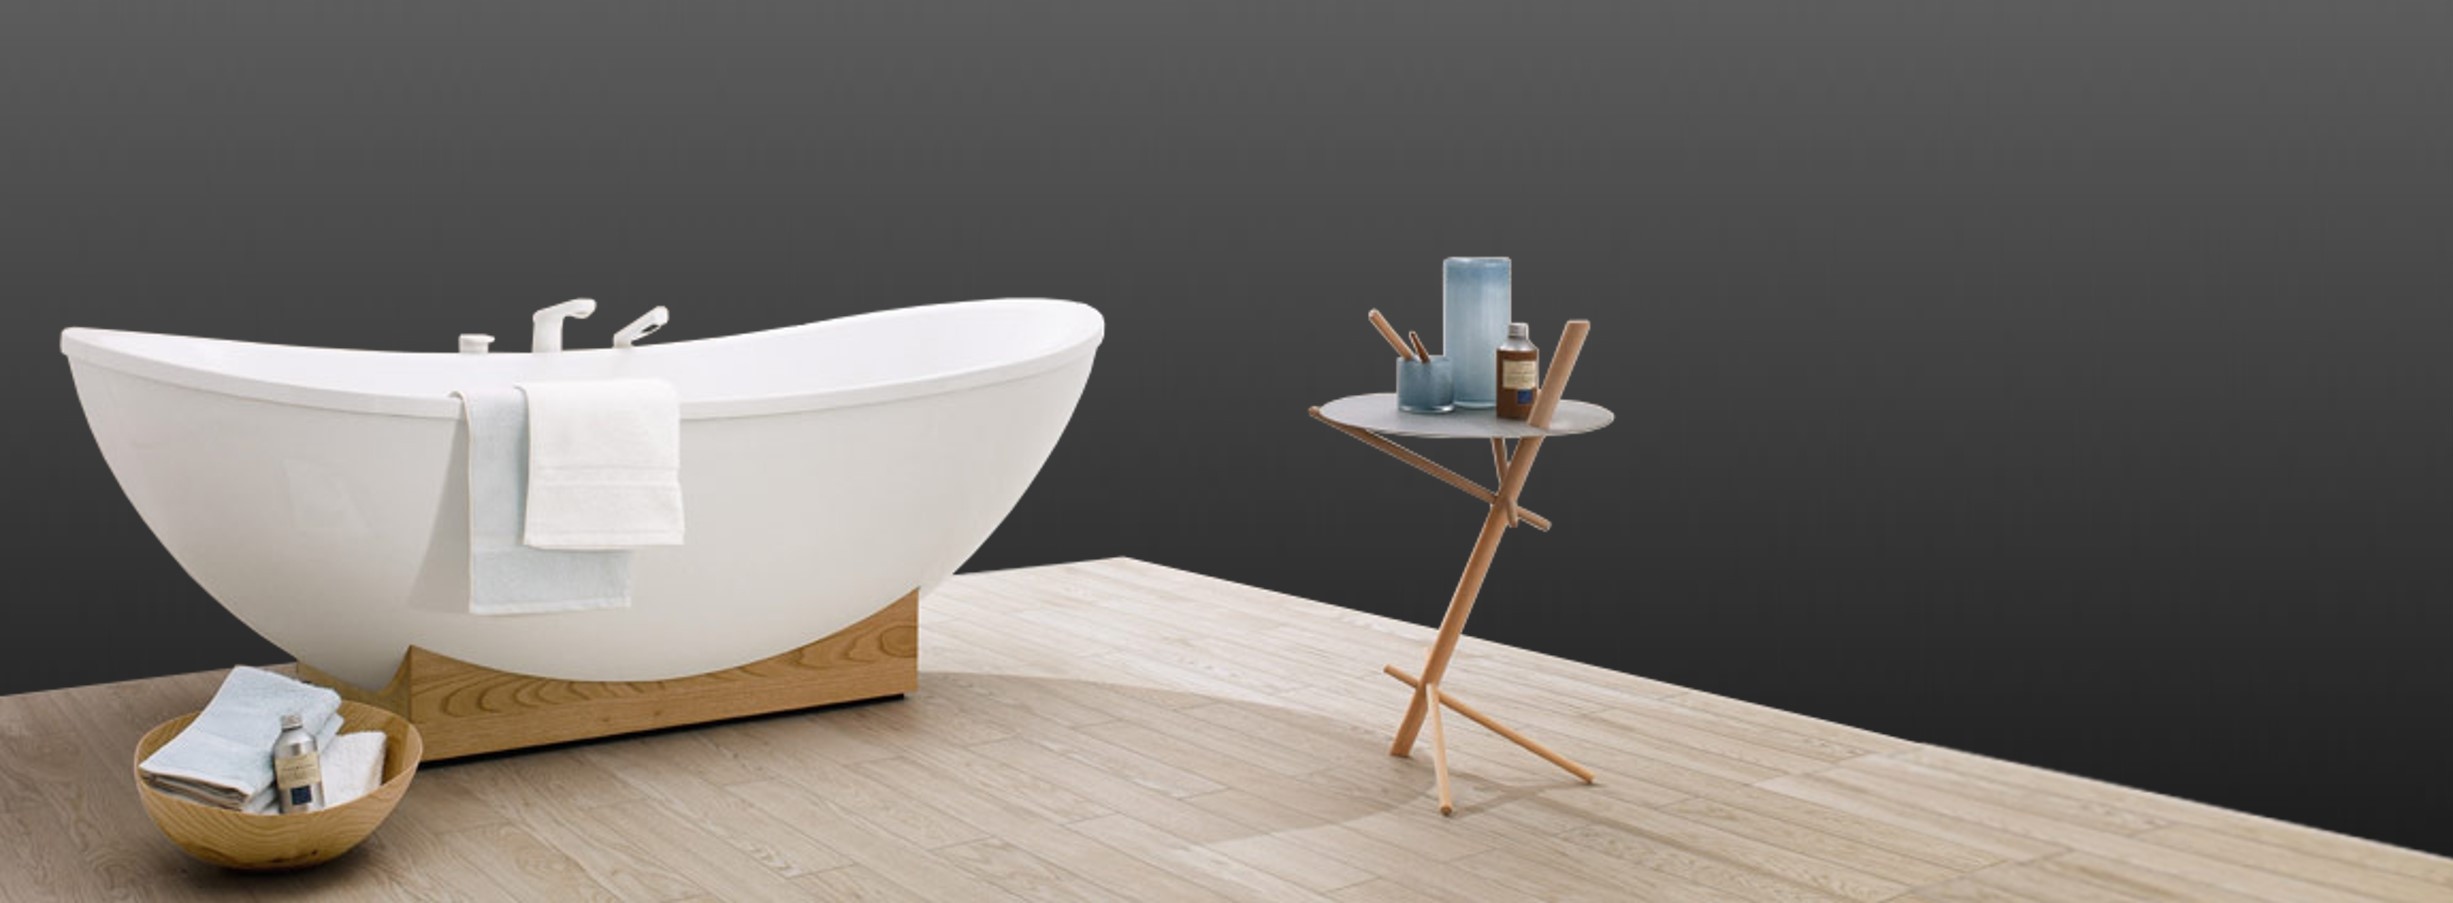 My Nature freestanding bathtub at xTWOstore